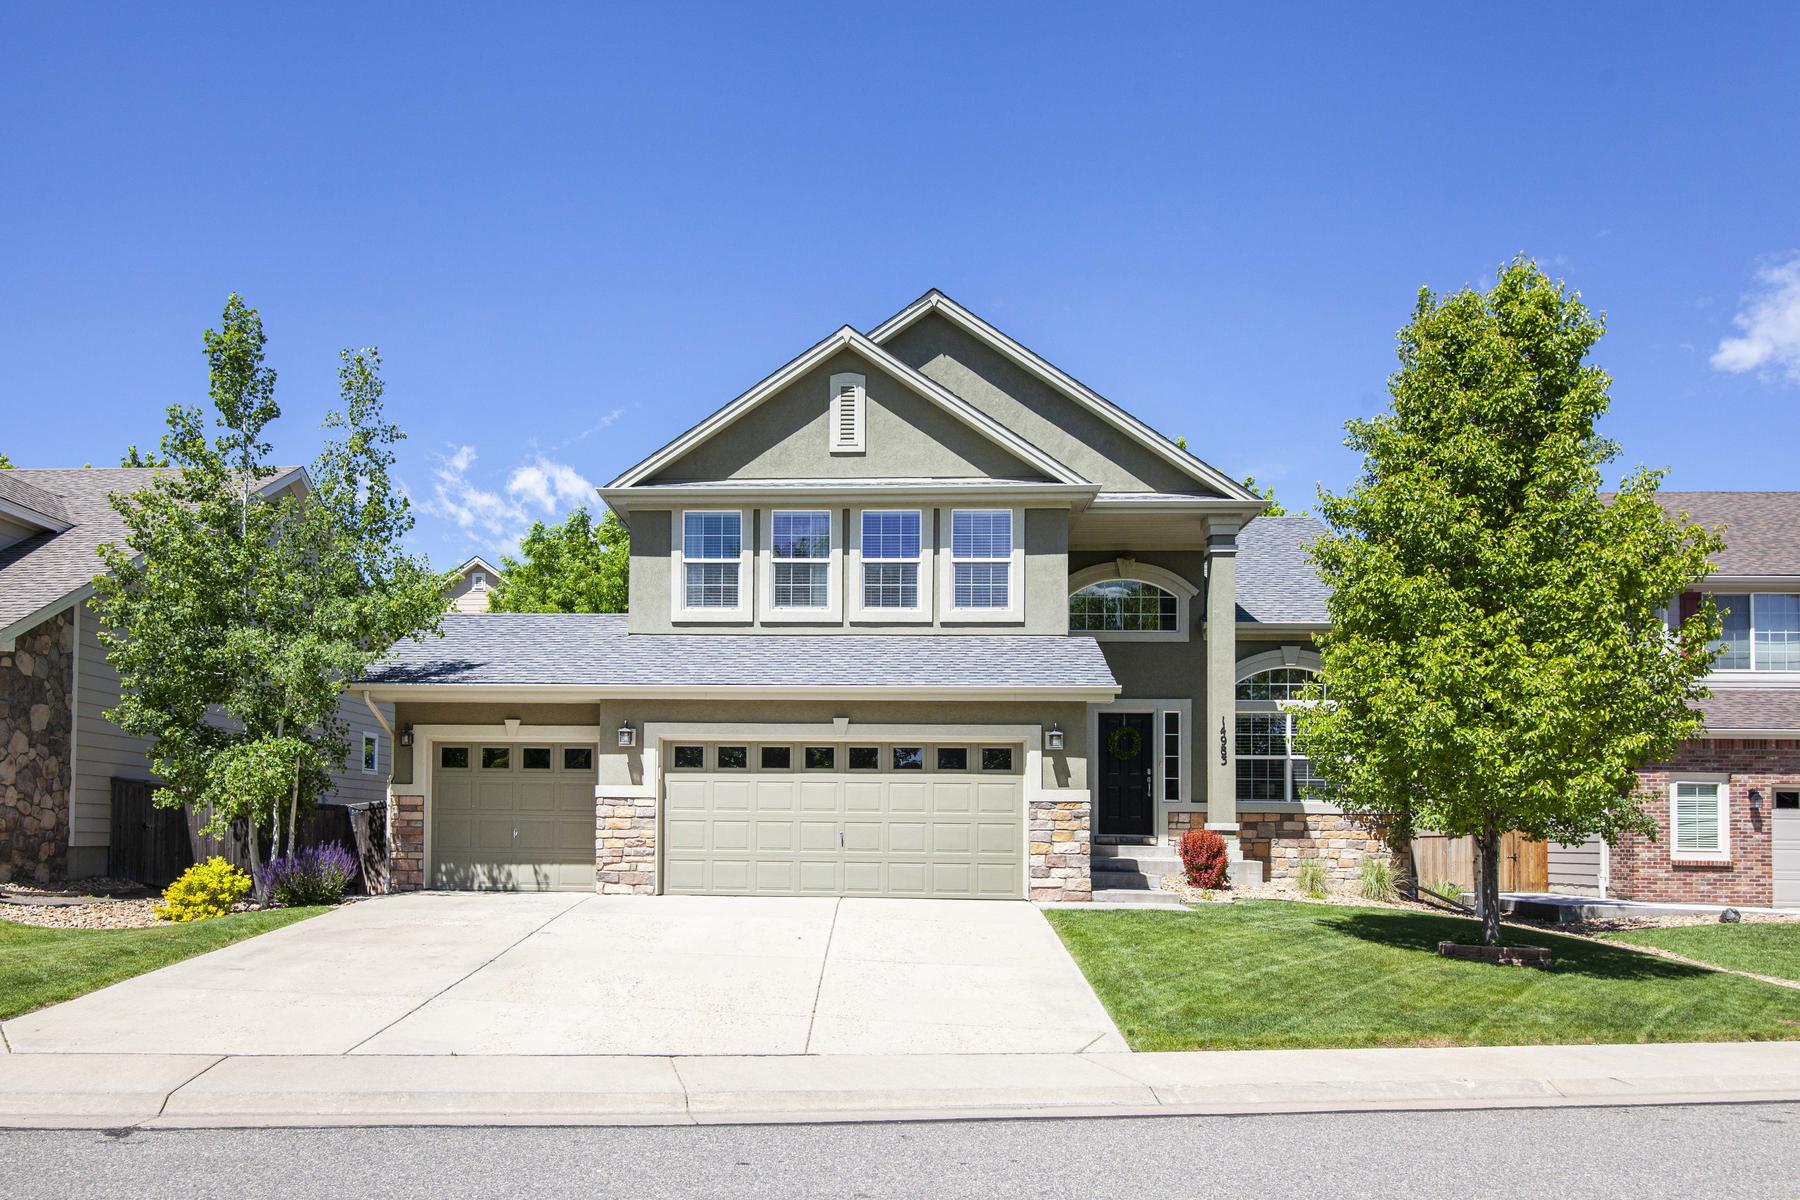 Single Family Homes for Sale at Fantastic Location in The Desirable Haven Pool Community! 14983 Columbine Street Thornton, Colorado 80602 United States